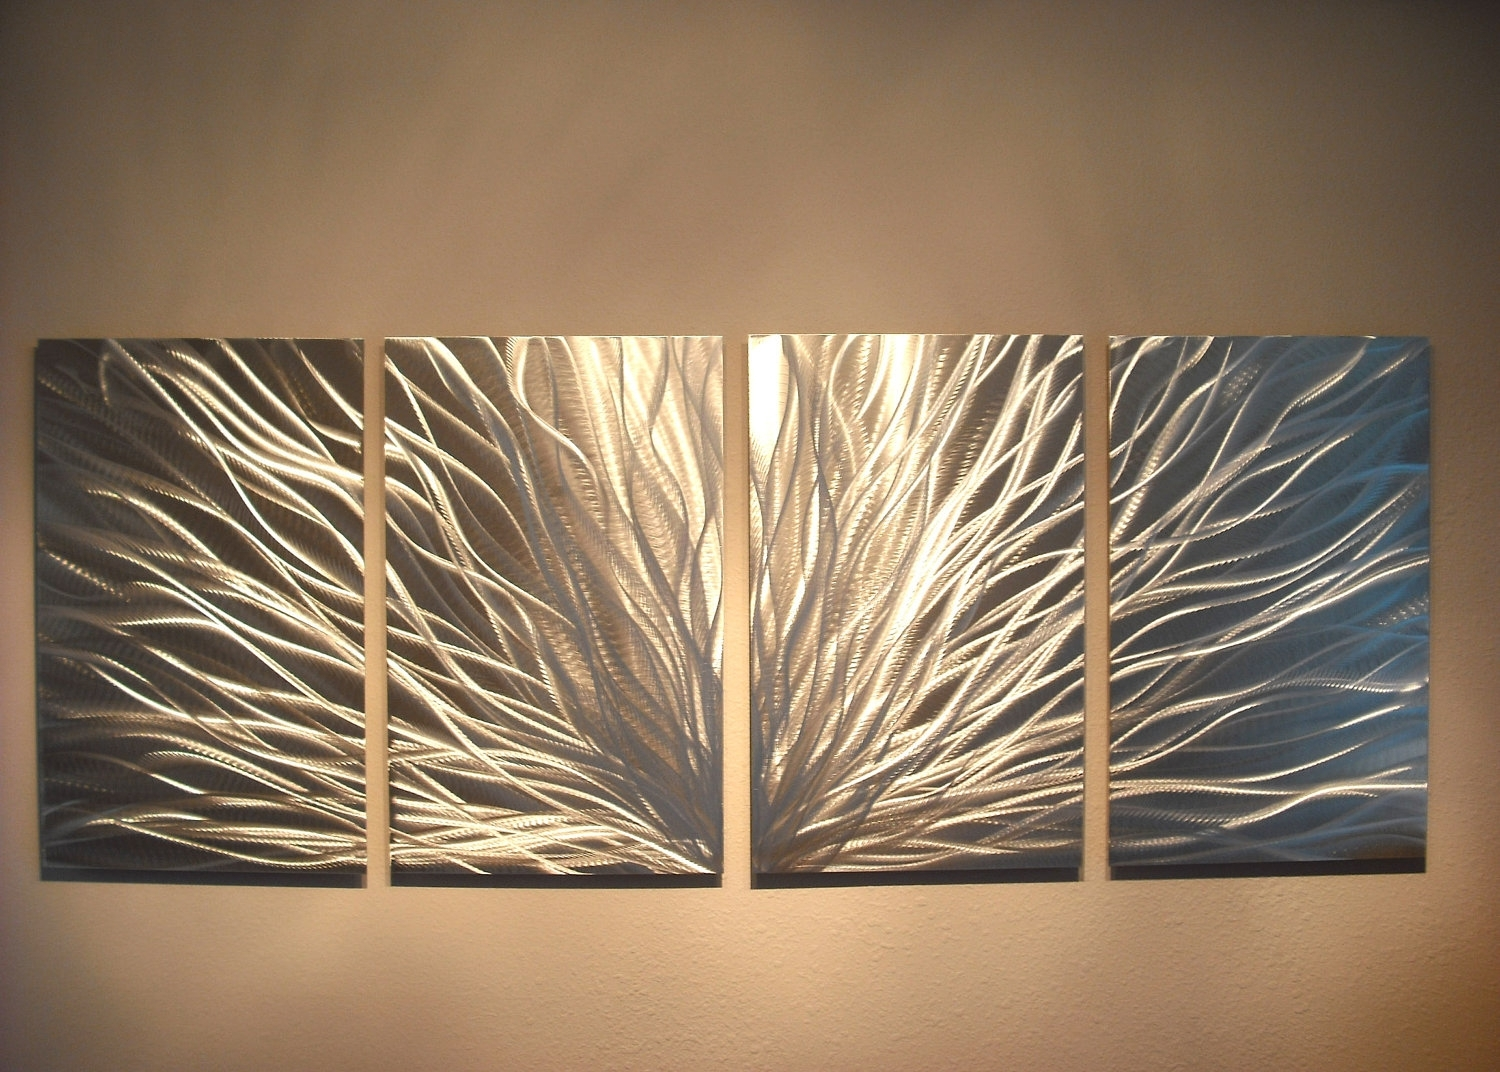 Good Metal Wall Art Panels : Andrews Living Arts – Good Design With For Wall Art Panels (View 9 of 20)